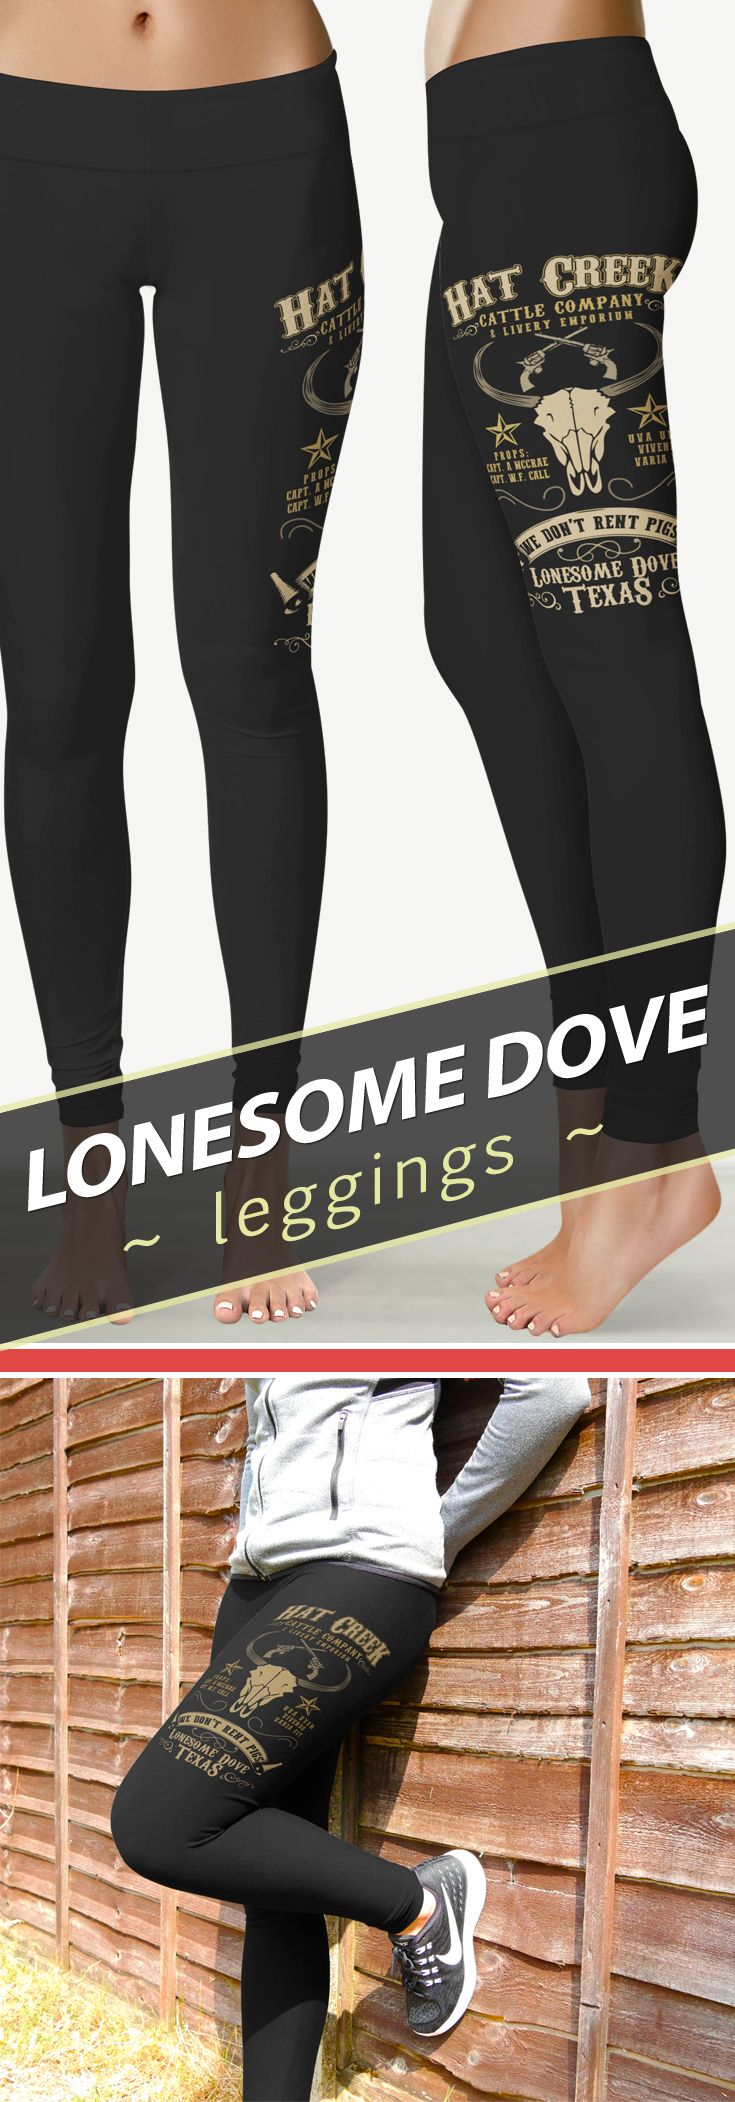 """<3 I Love These """"Hat Creek Cattle Company"""" Lonesome Dove Inspired Leggings!"""